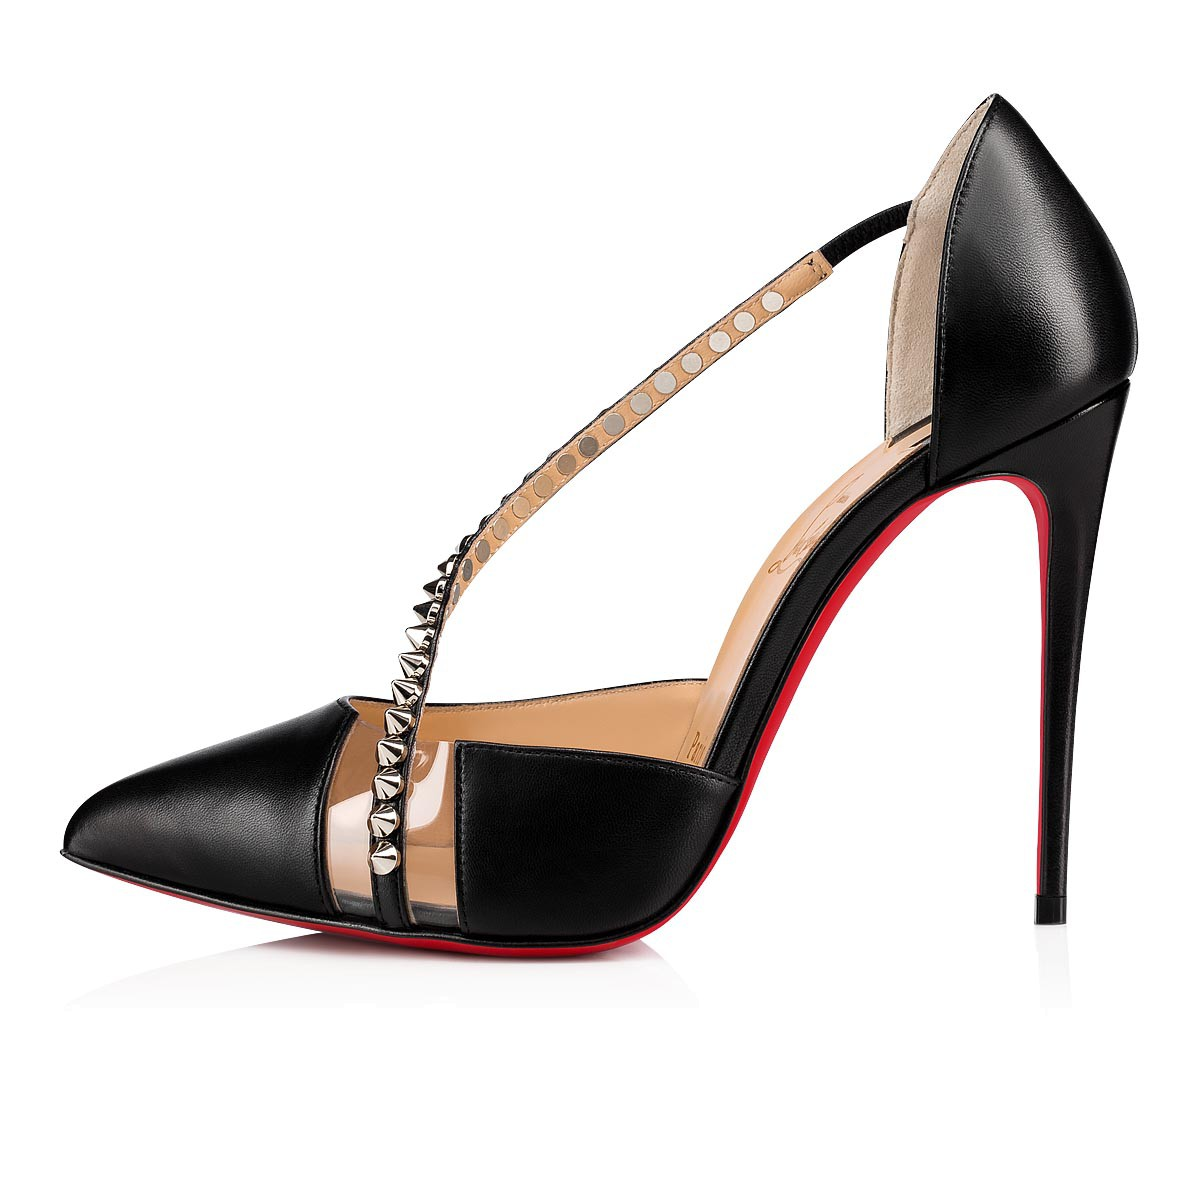 Souliers - Spike Cross - Christian Louboutin